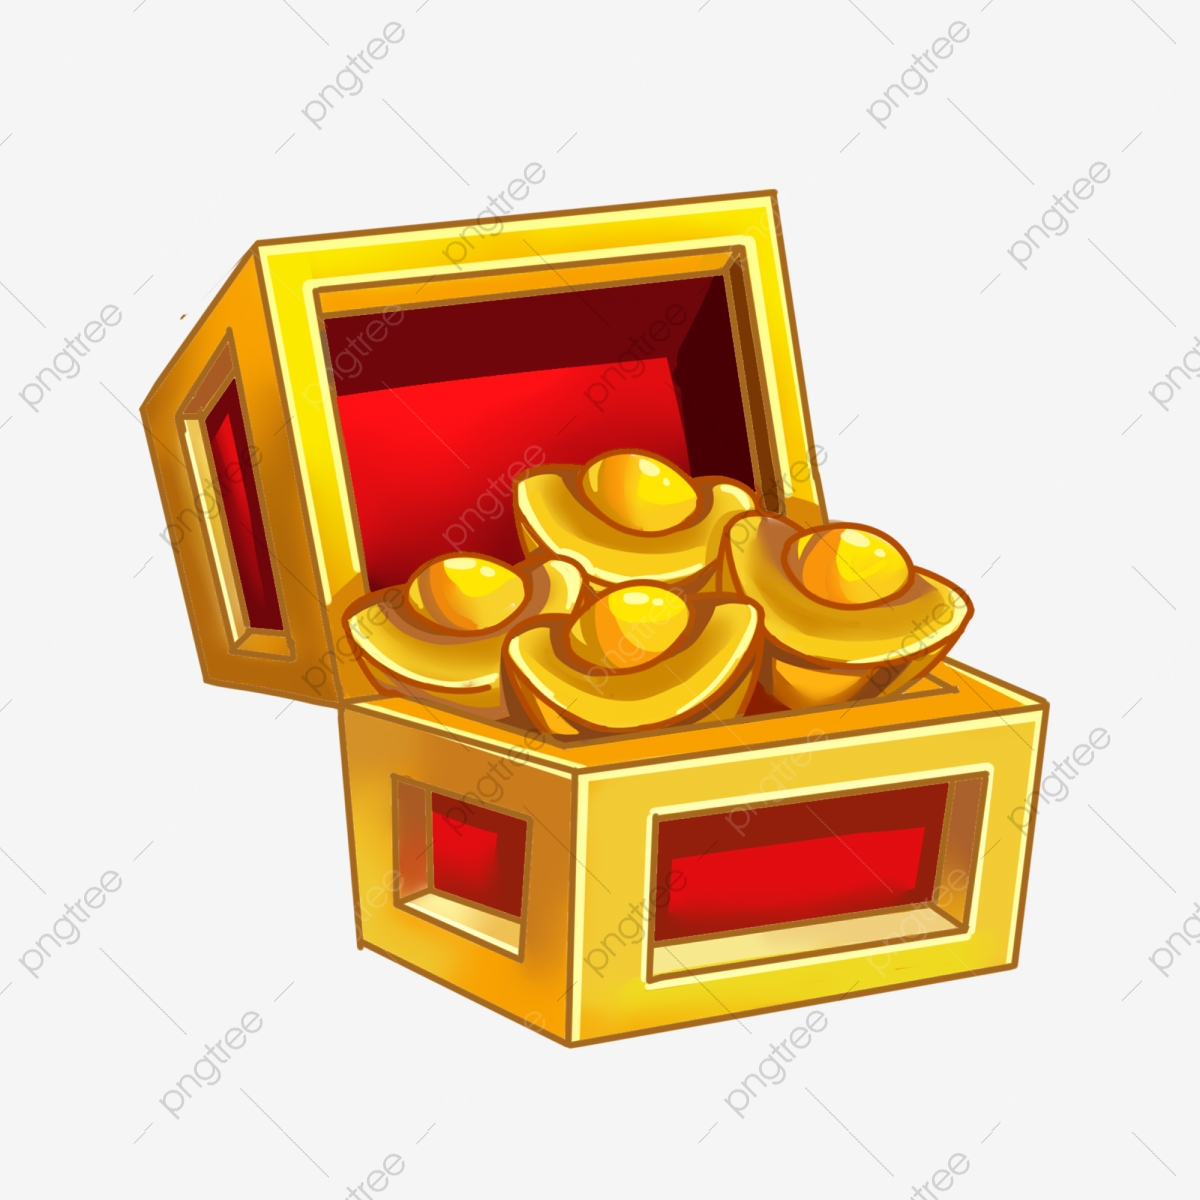 Gold and silver jewelry. Treasure clipart heap